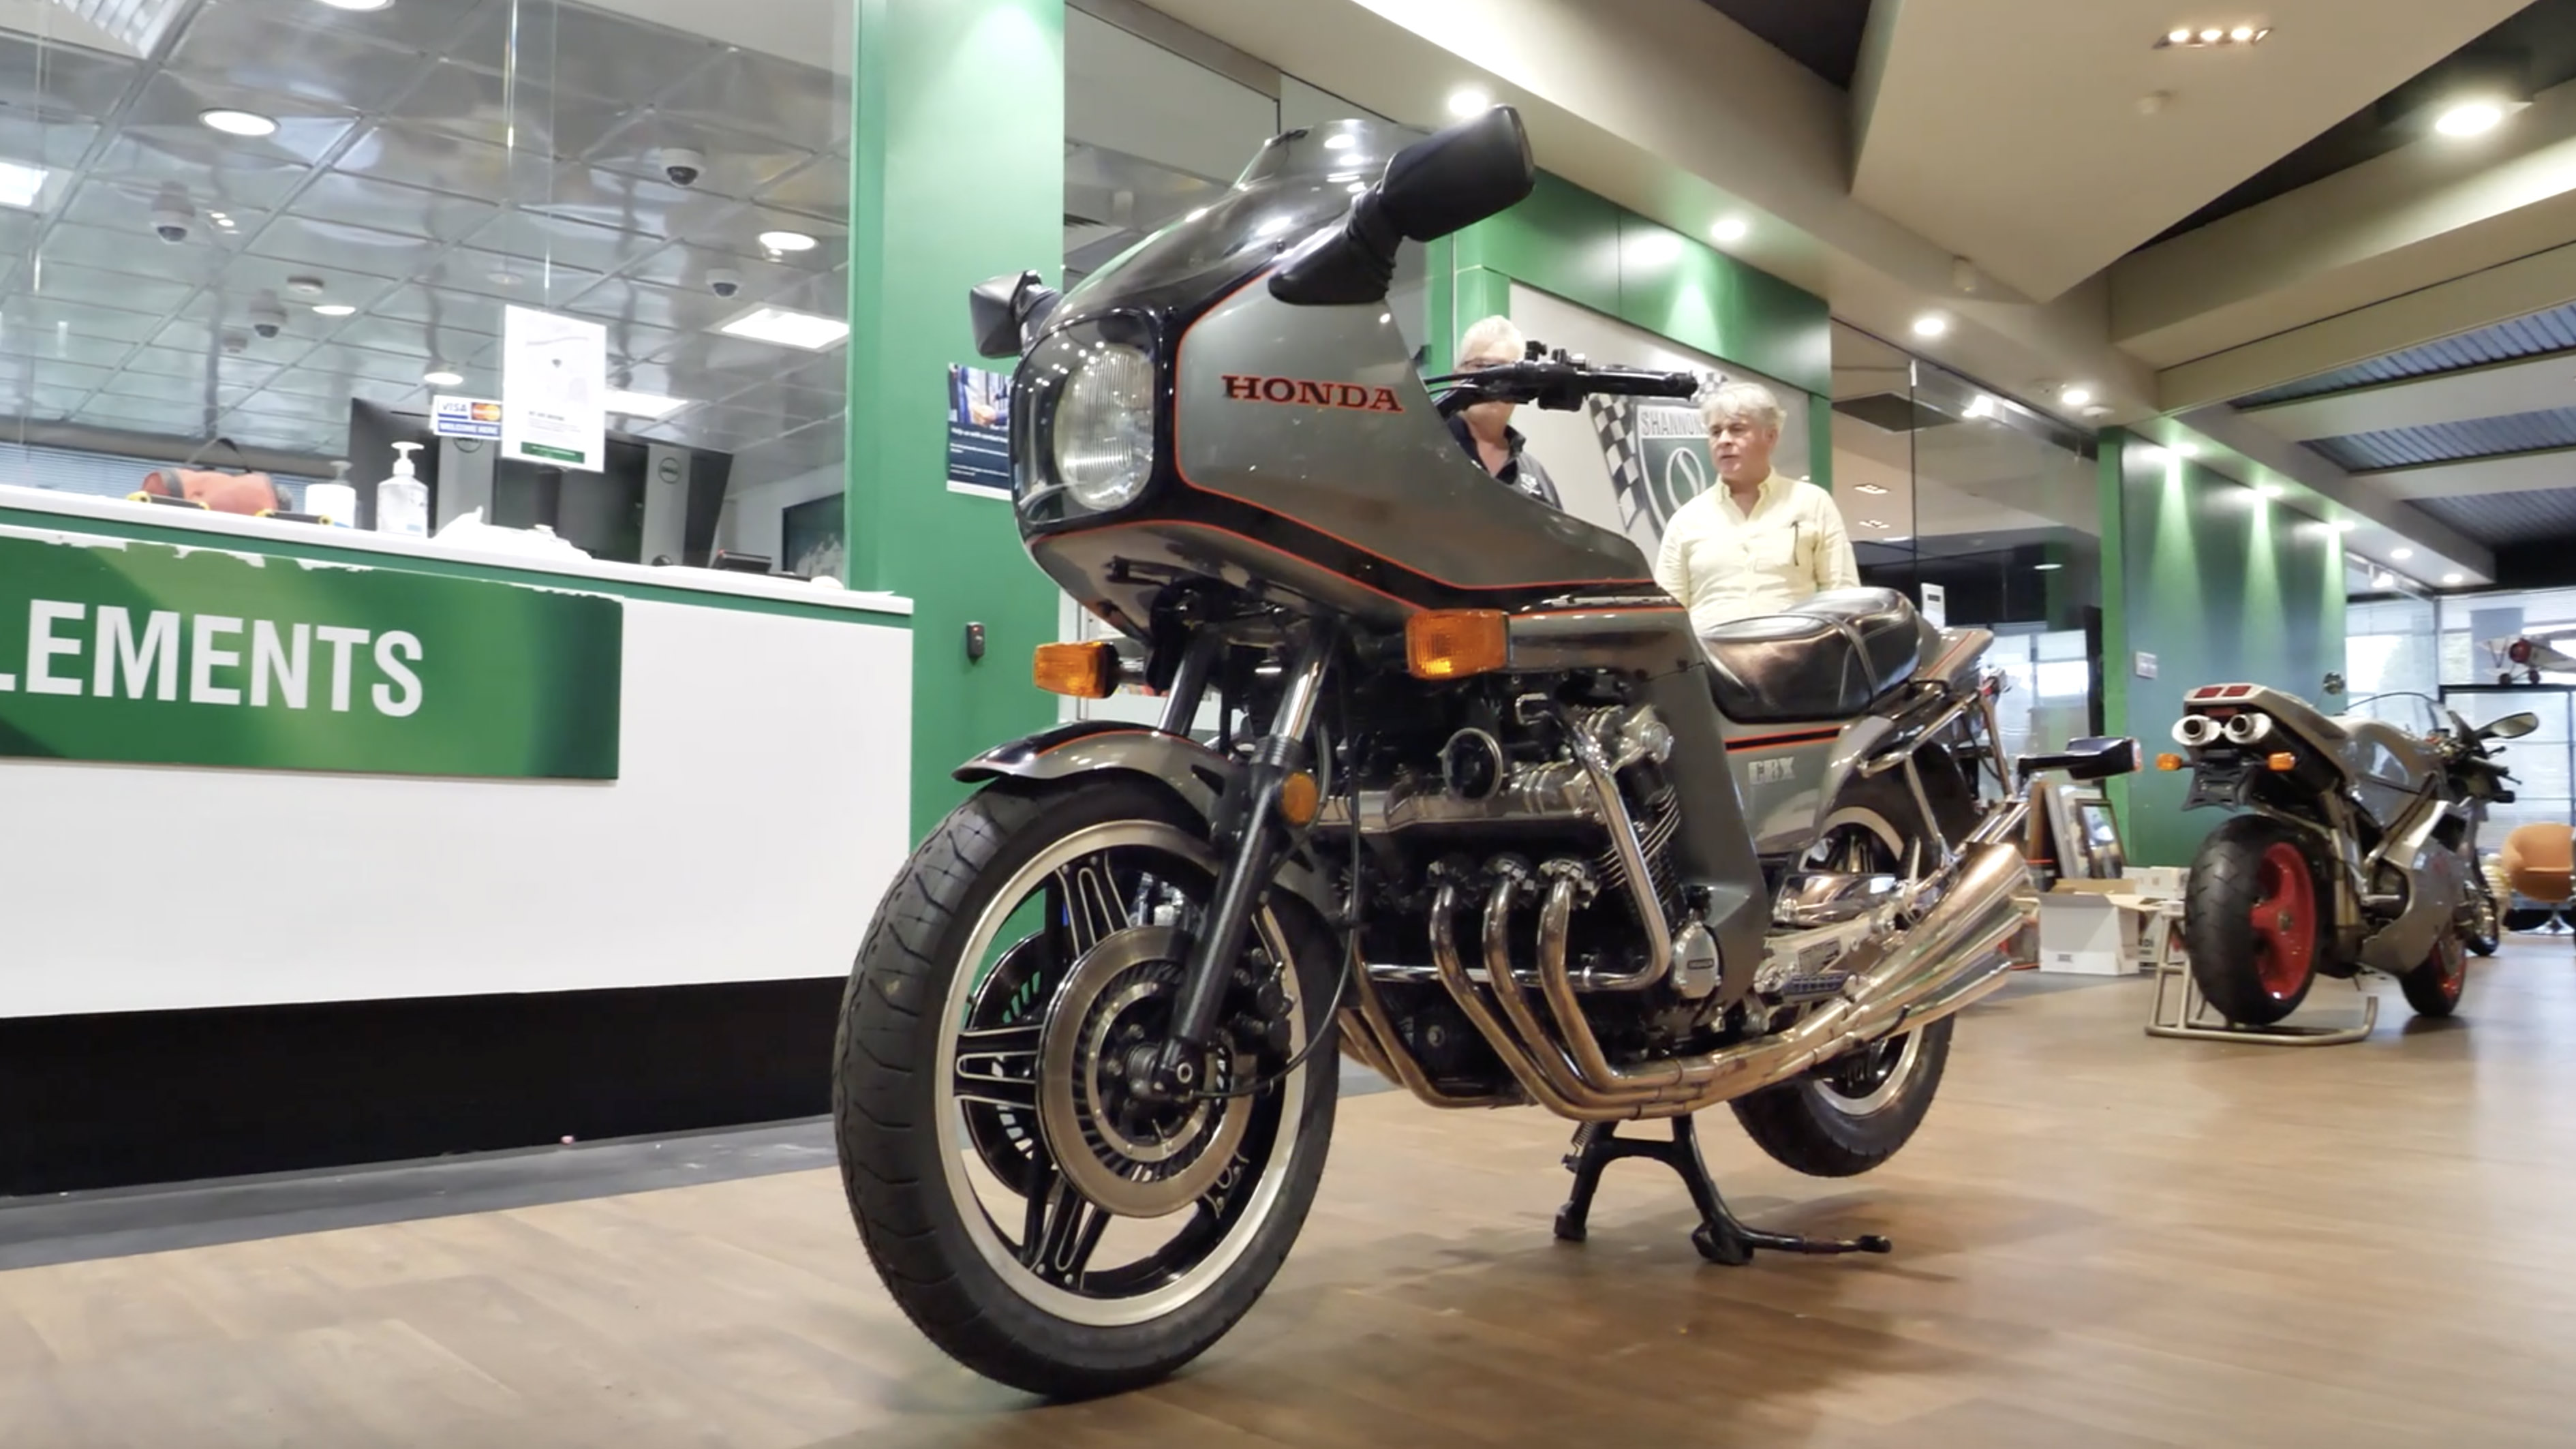 1981 Honda CBX1000 Motorcycle - 2020 Shannons Spring Timed Online Auction